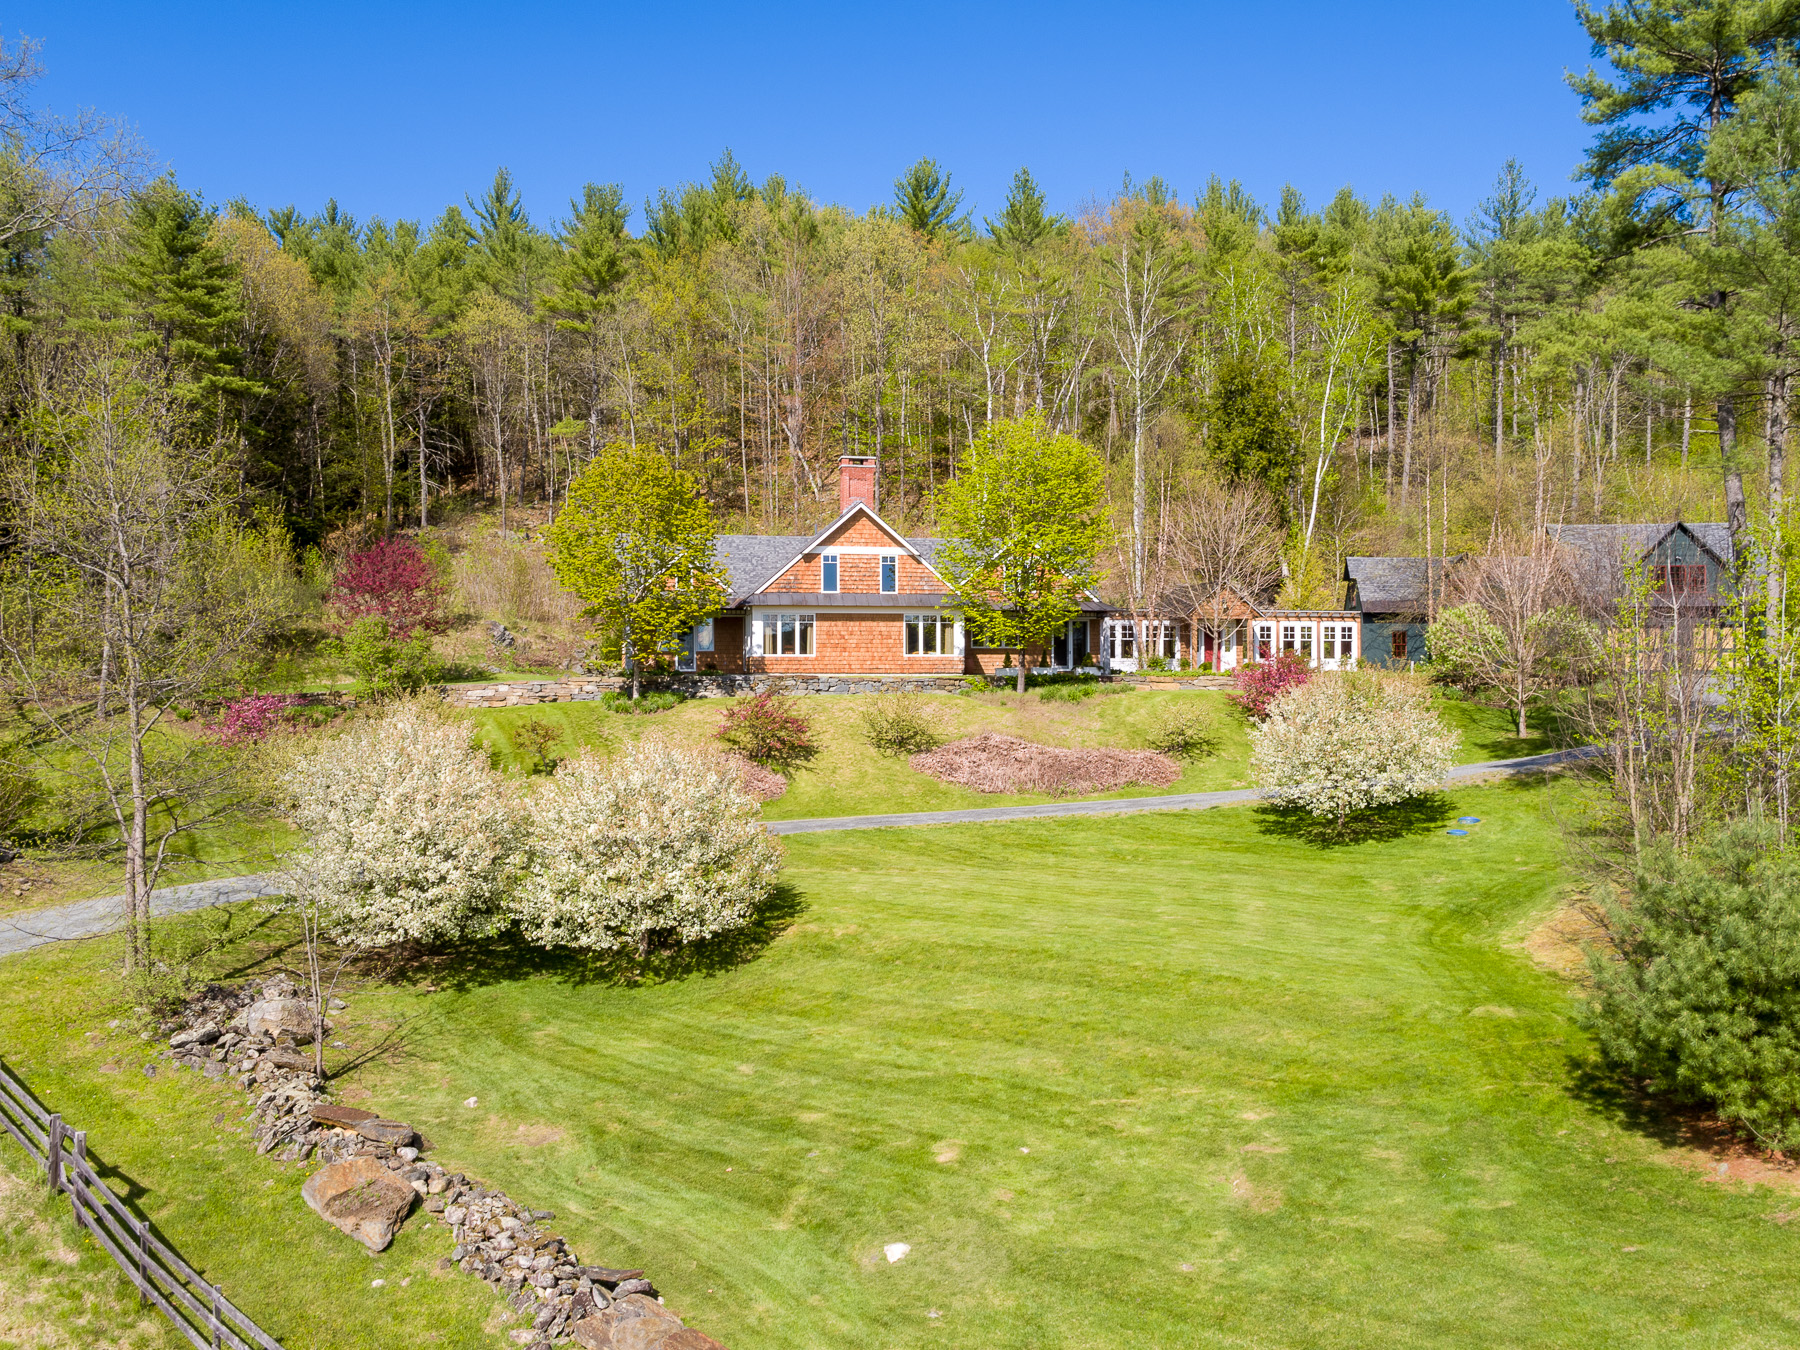 Single Family Home for Sale at 288 Orford Road, Lyme 288 Orford Rd Lyme, New Hampshire, 03768 United States